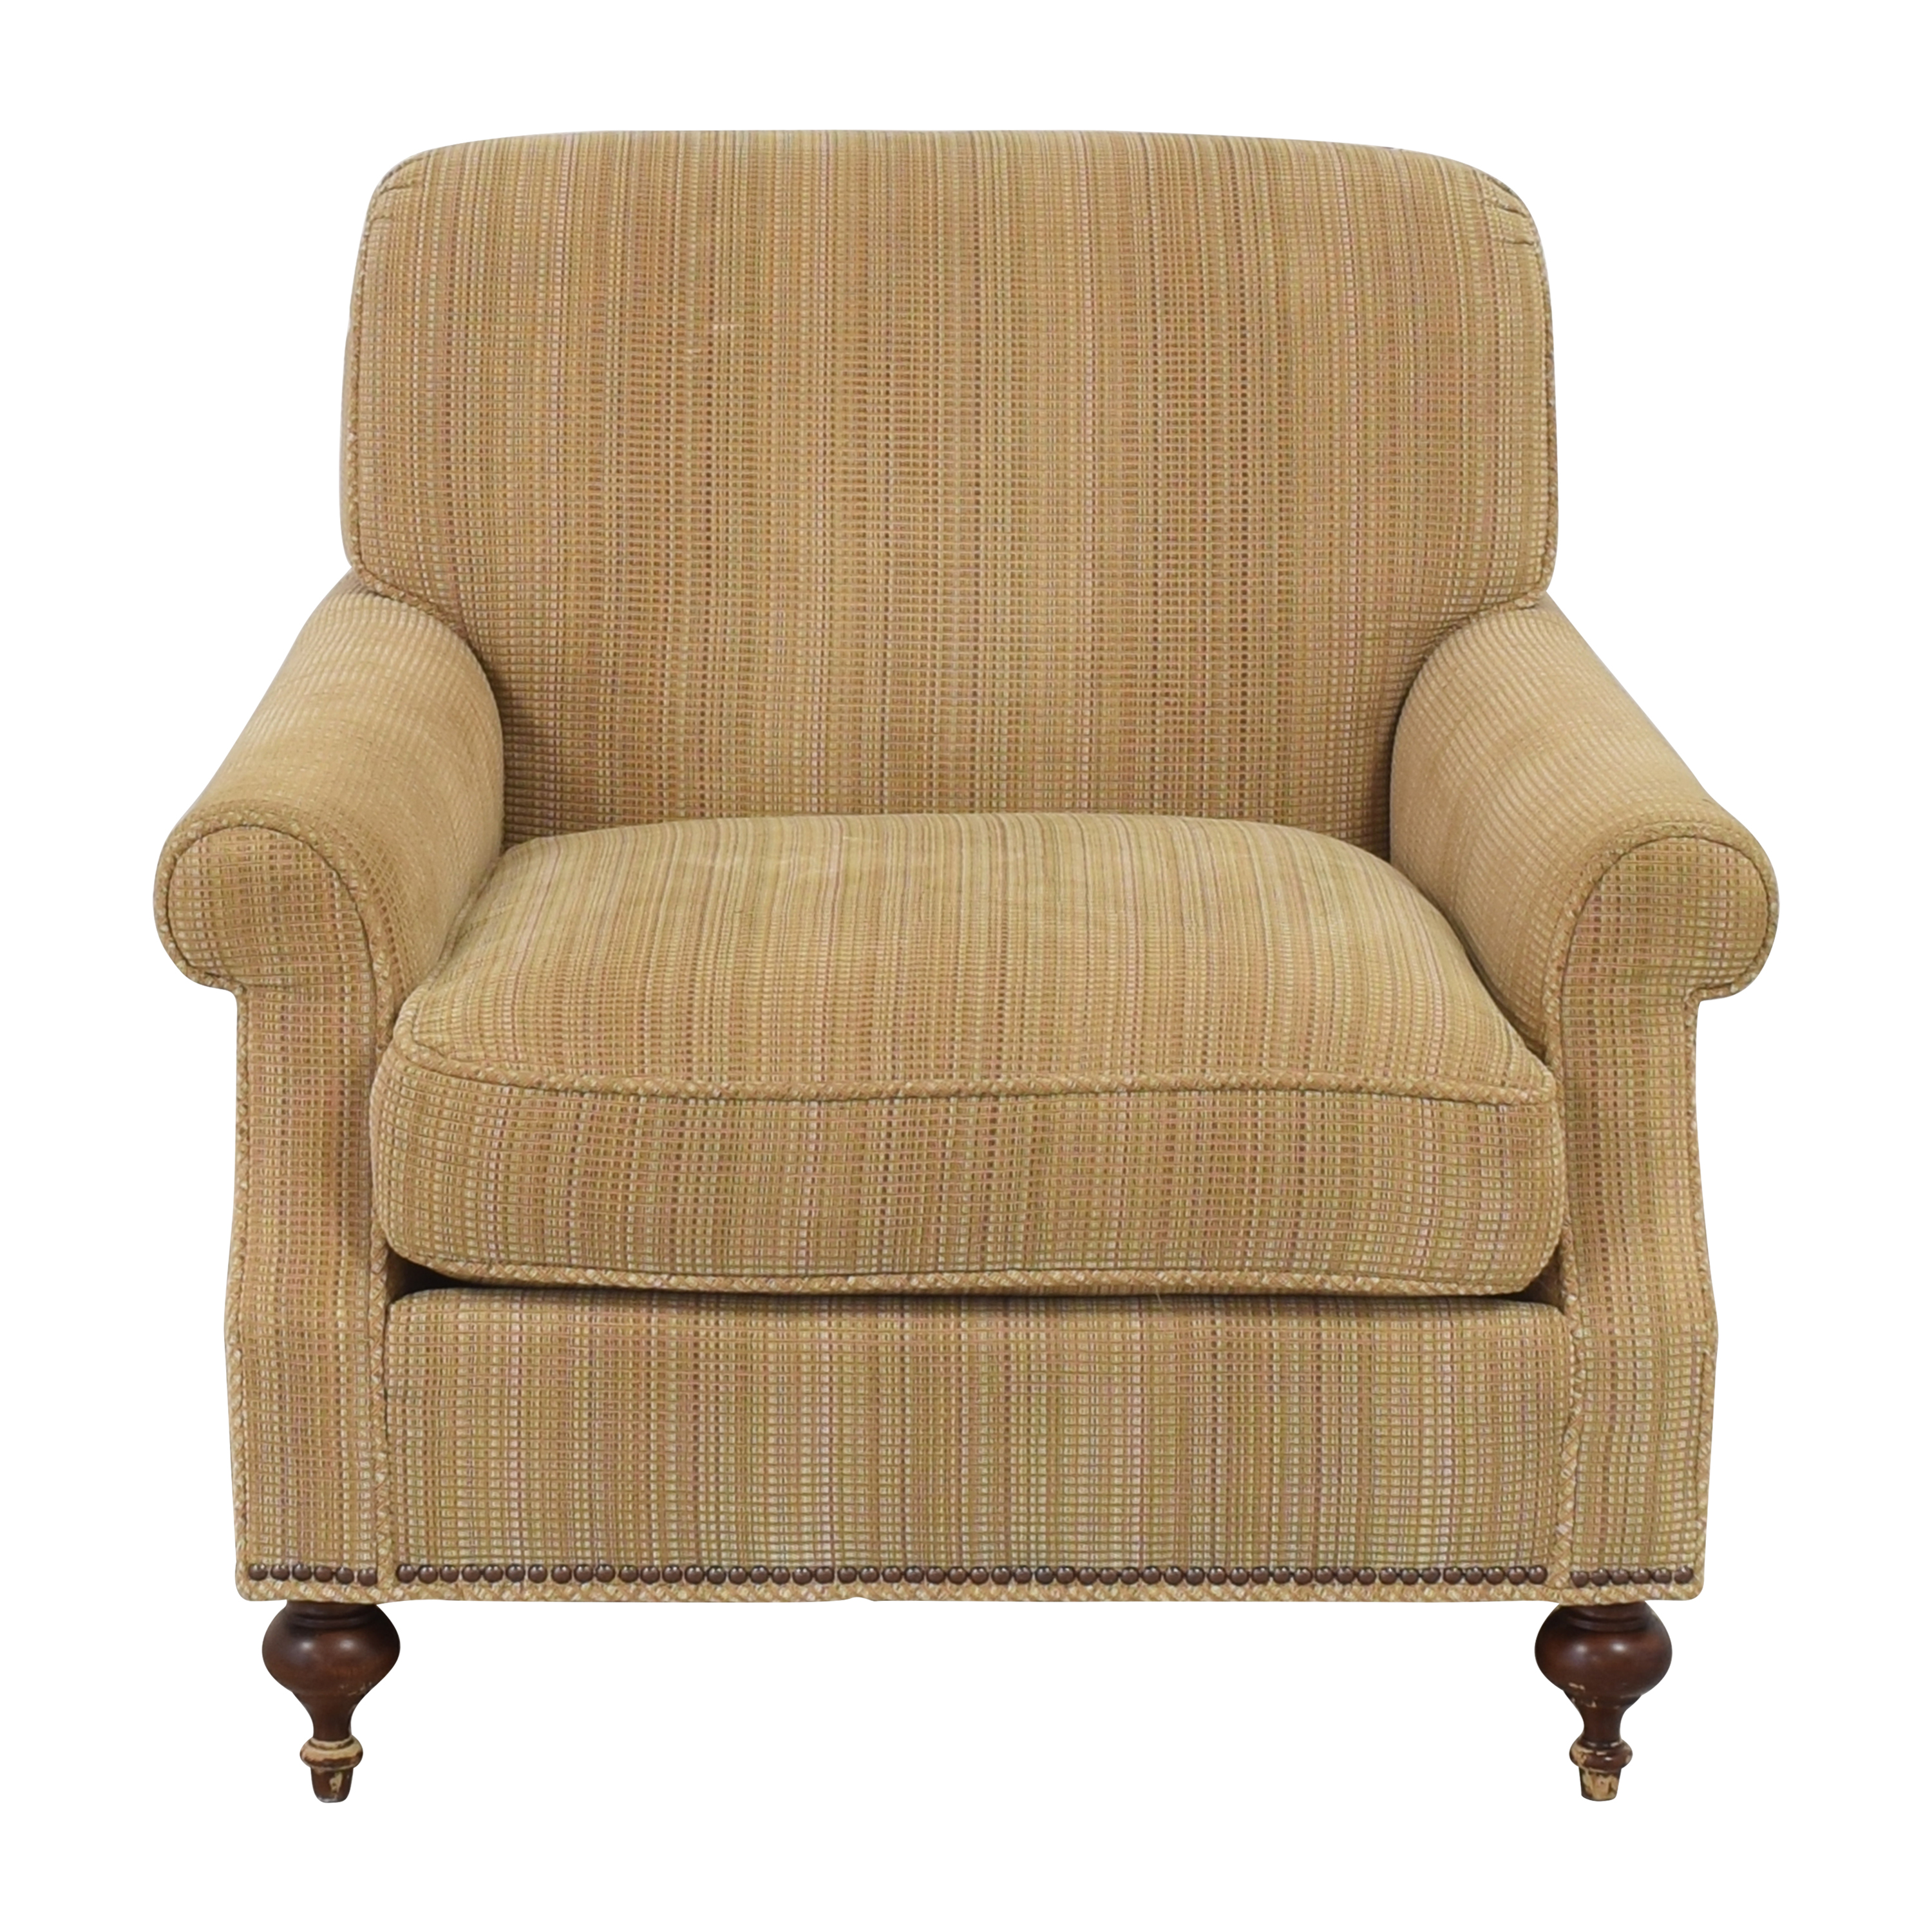 buy Charles Stewart Company Accent Chair Charles Stewart Company Accent Chairs